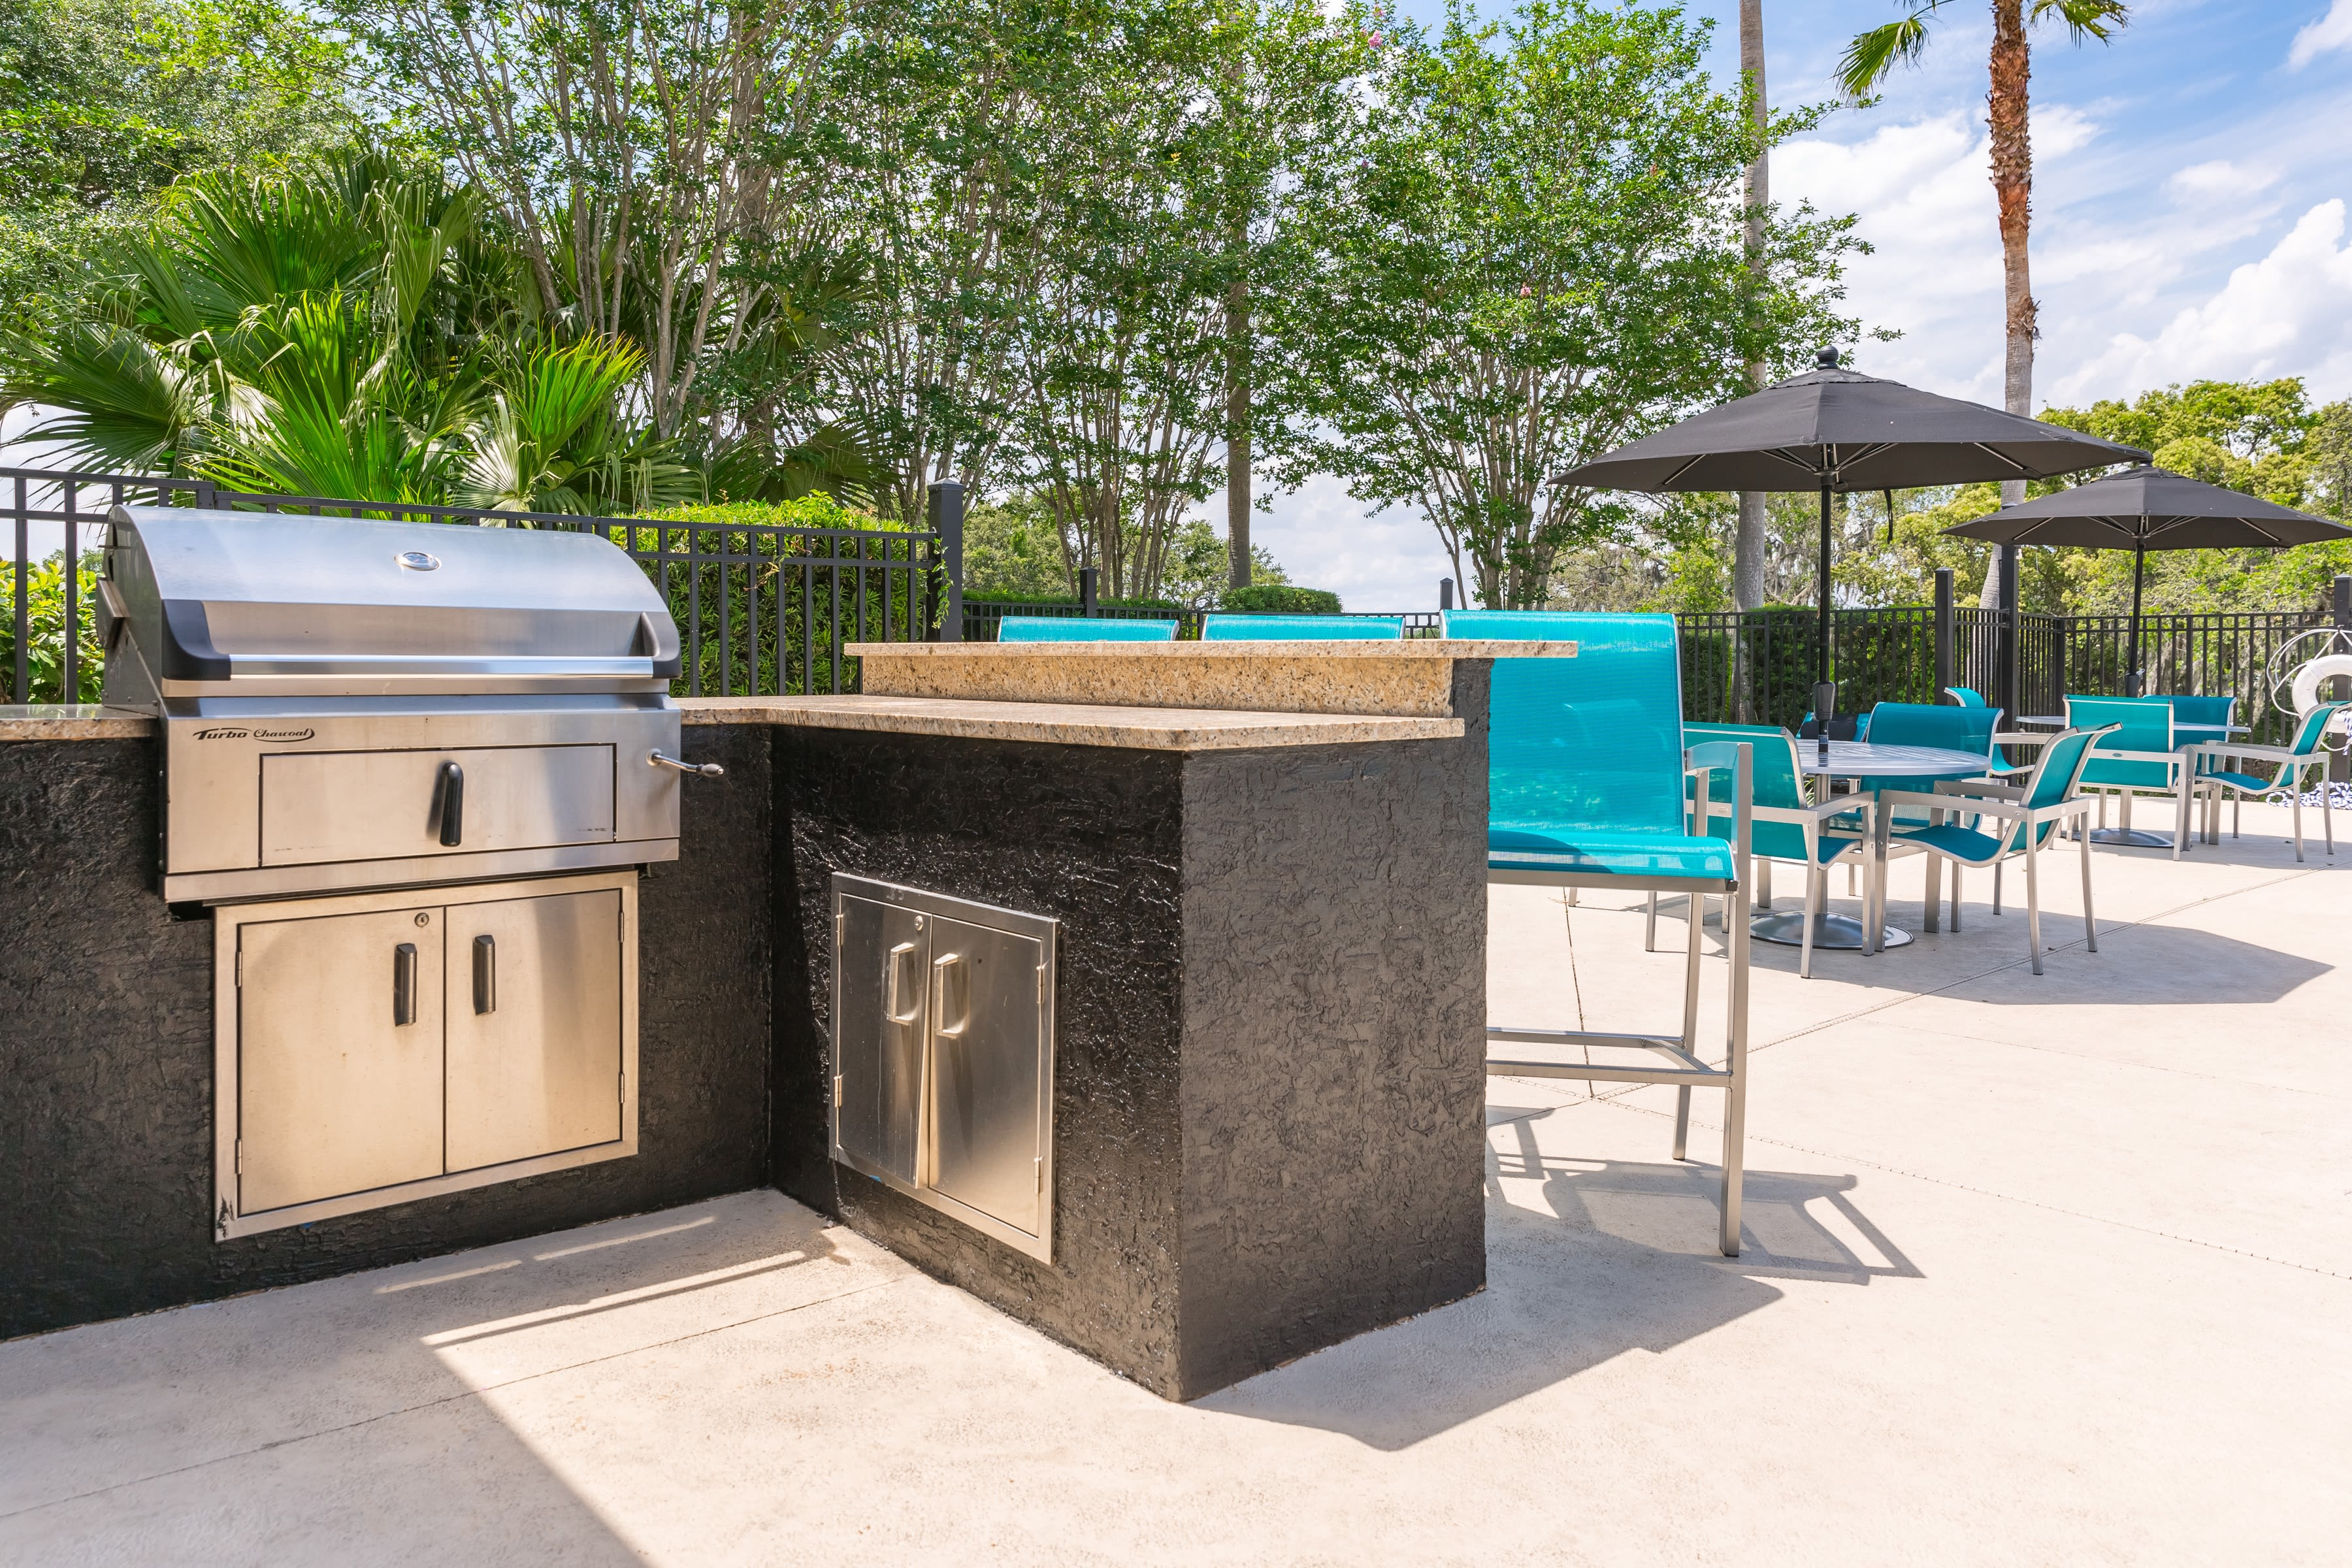 outdoor grilling areas at The Avenue in Ocoee